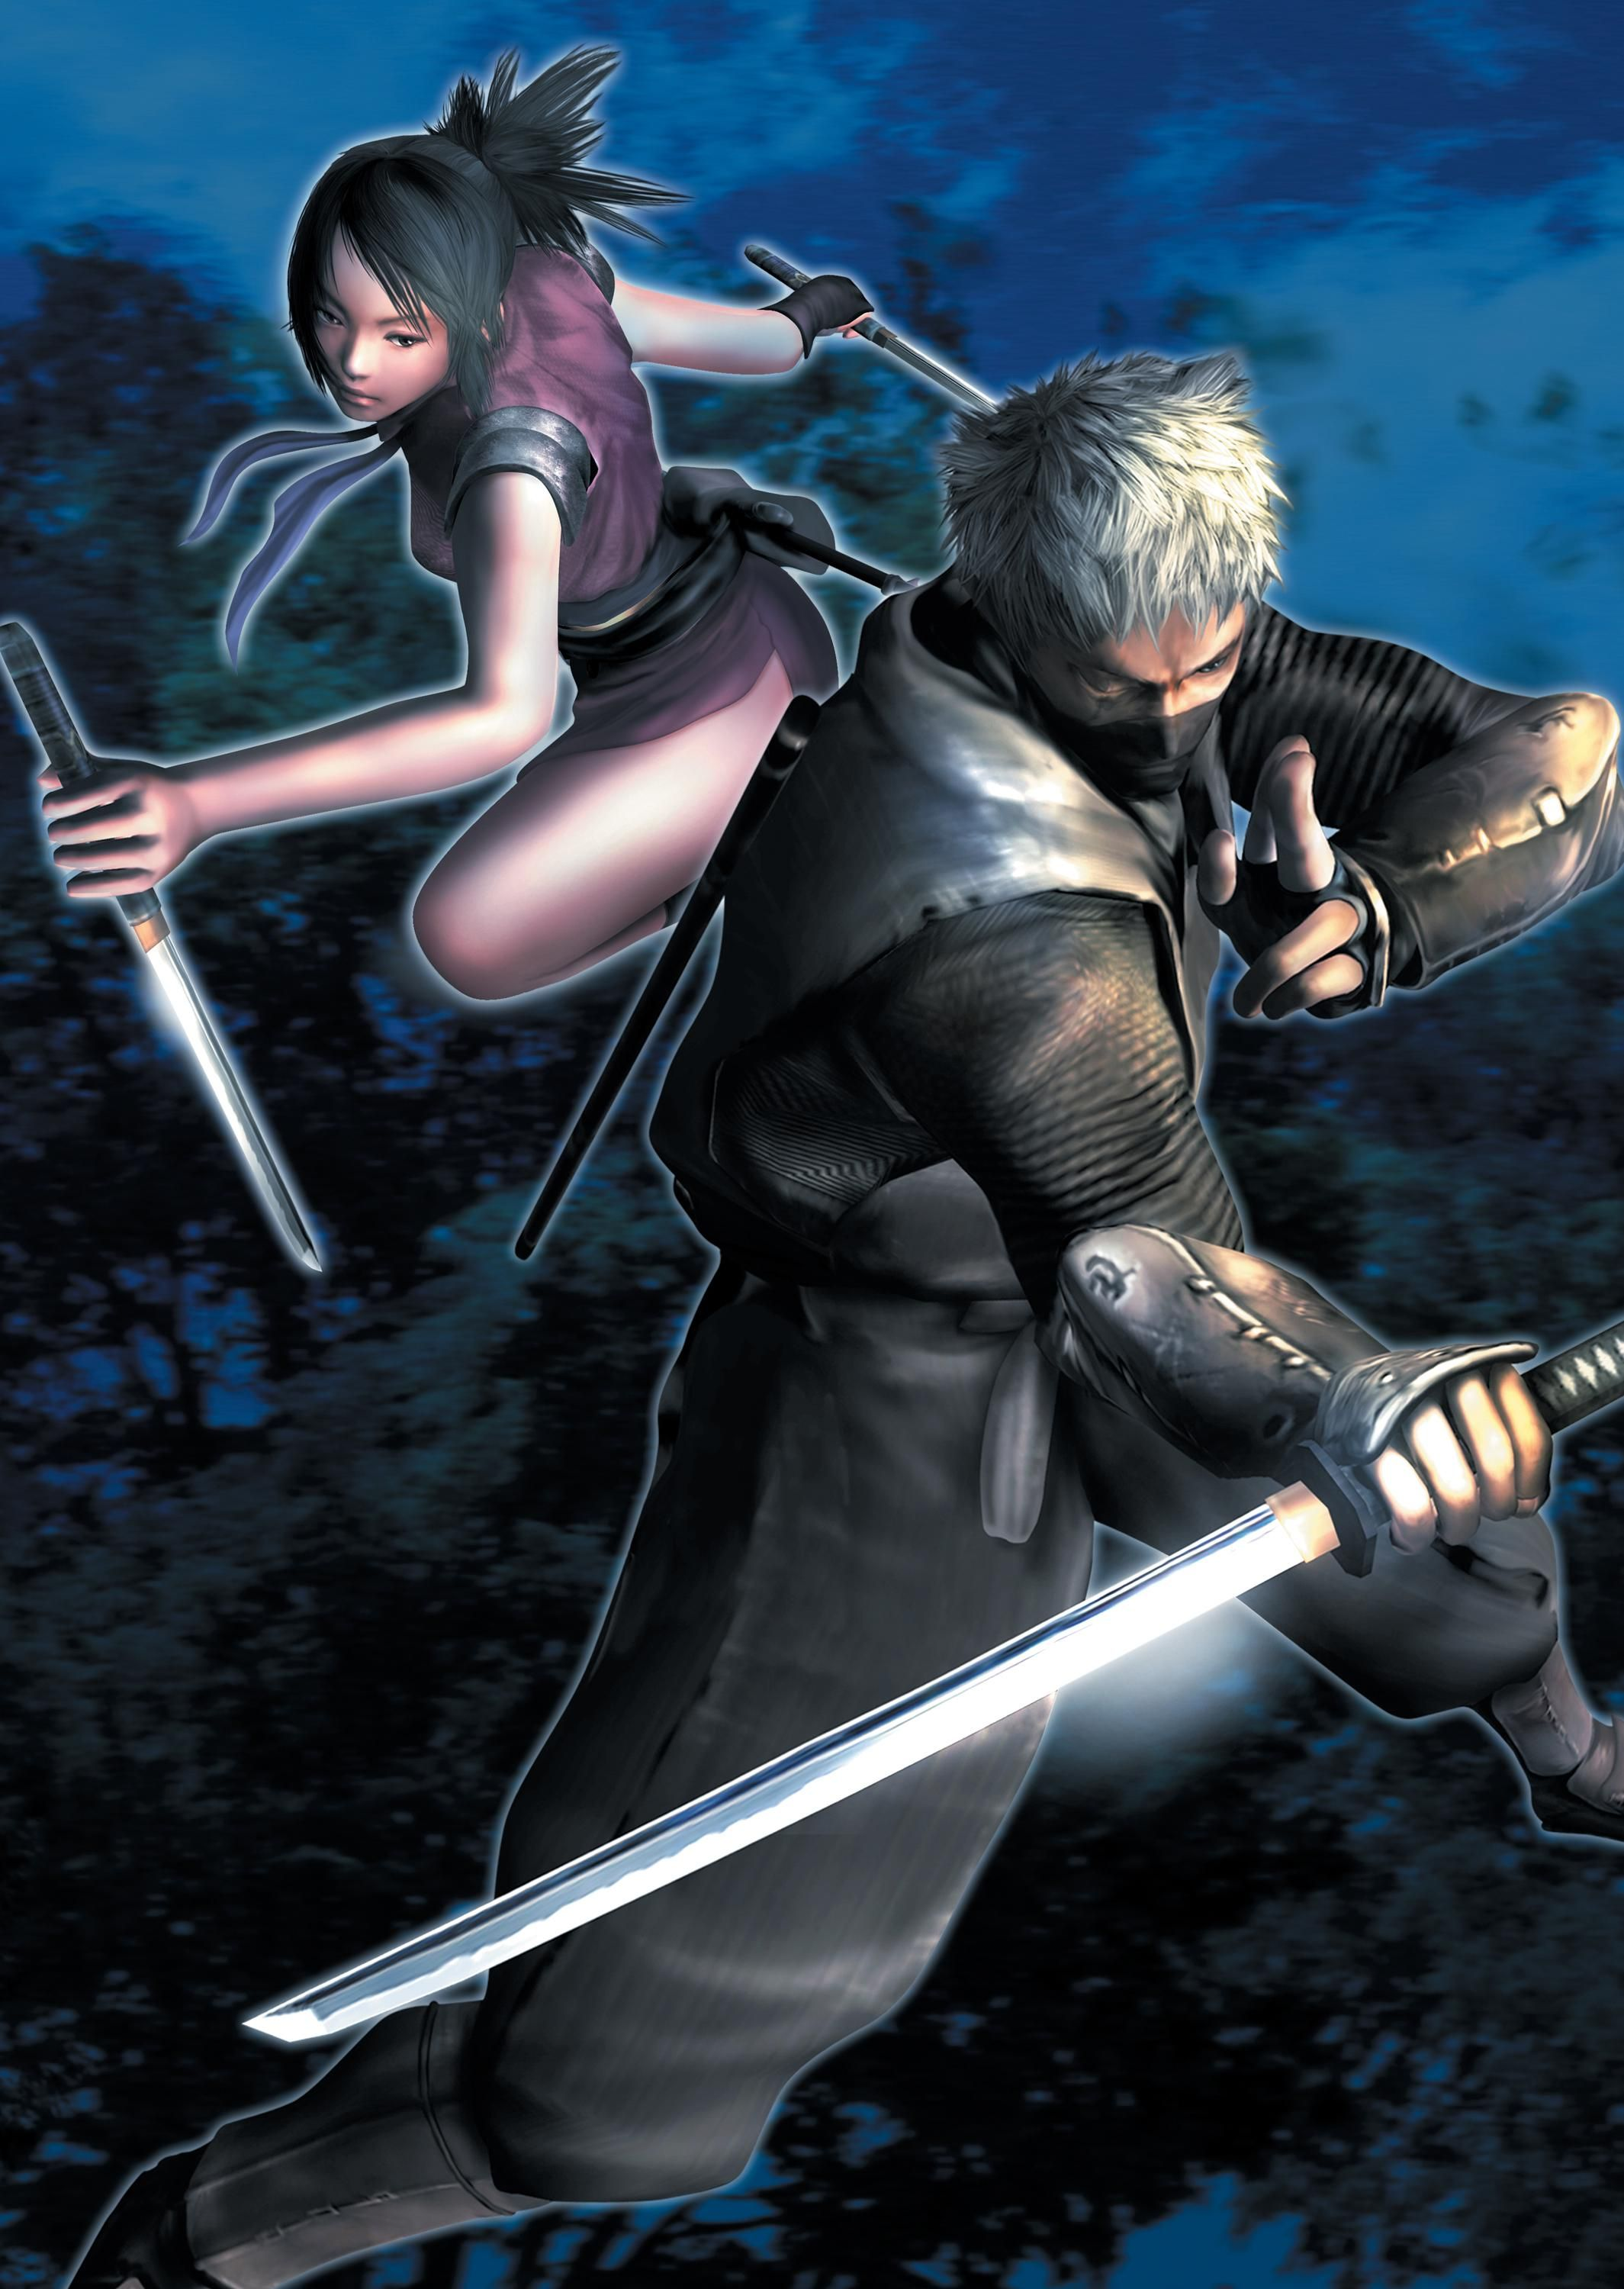 Tenchu Hd Wallpapers Posted By Sarah Sellers